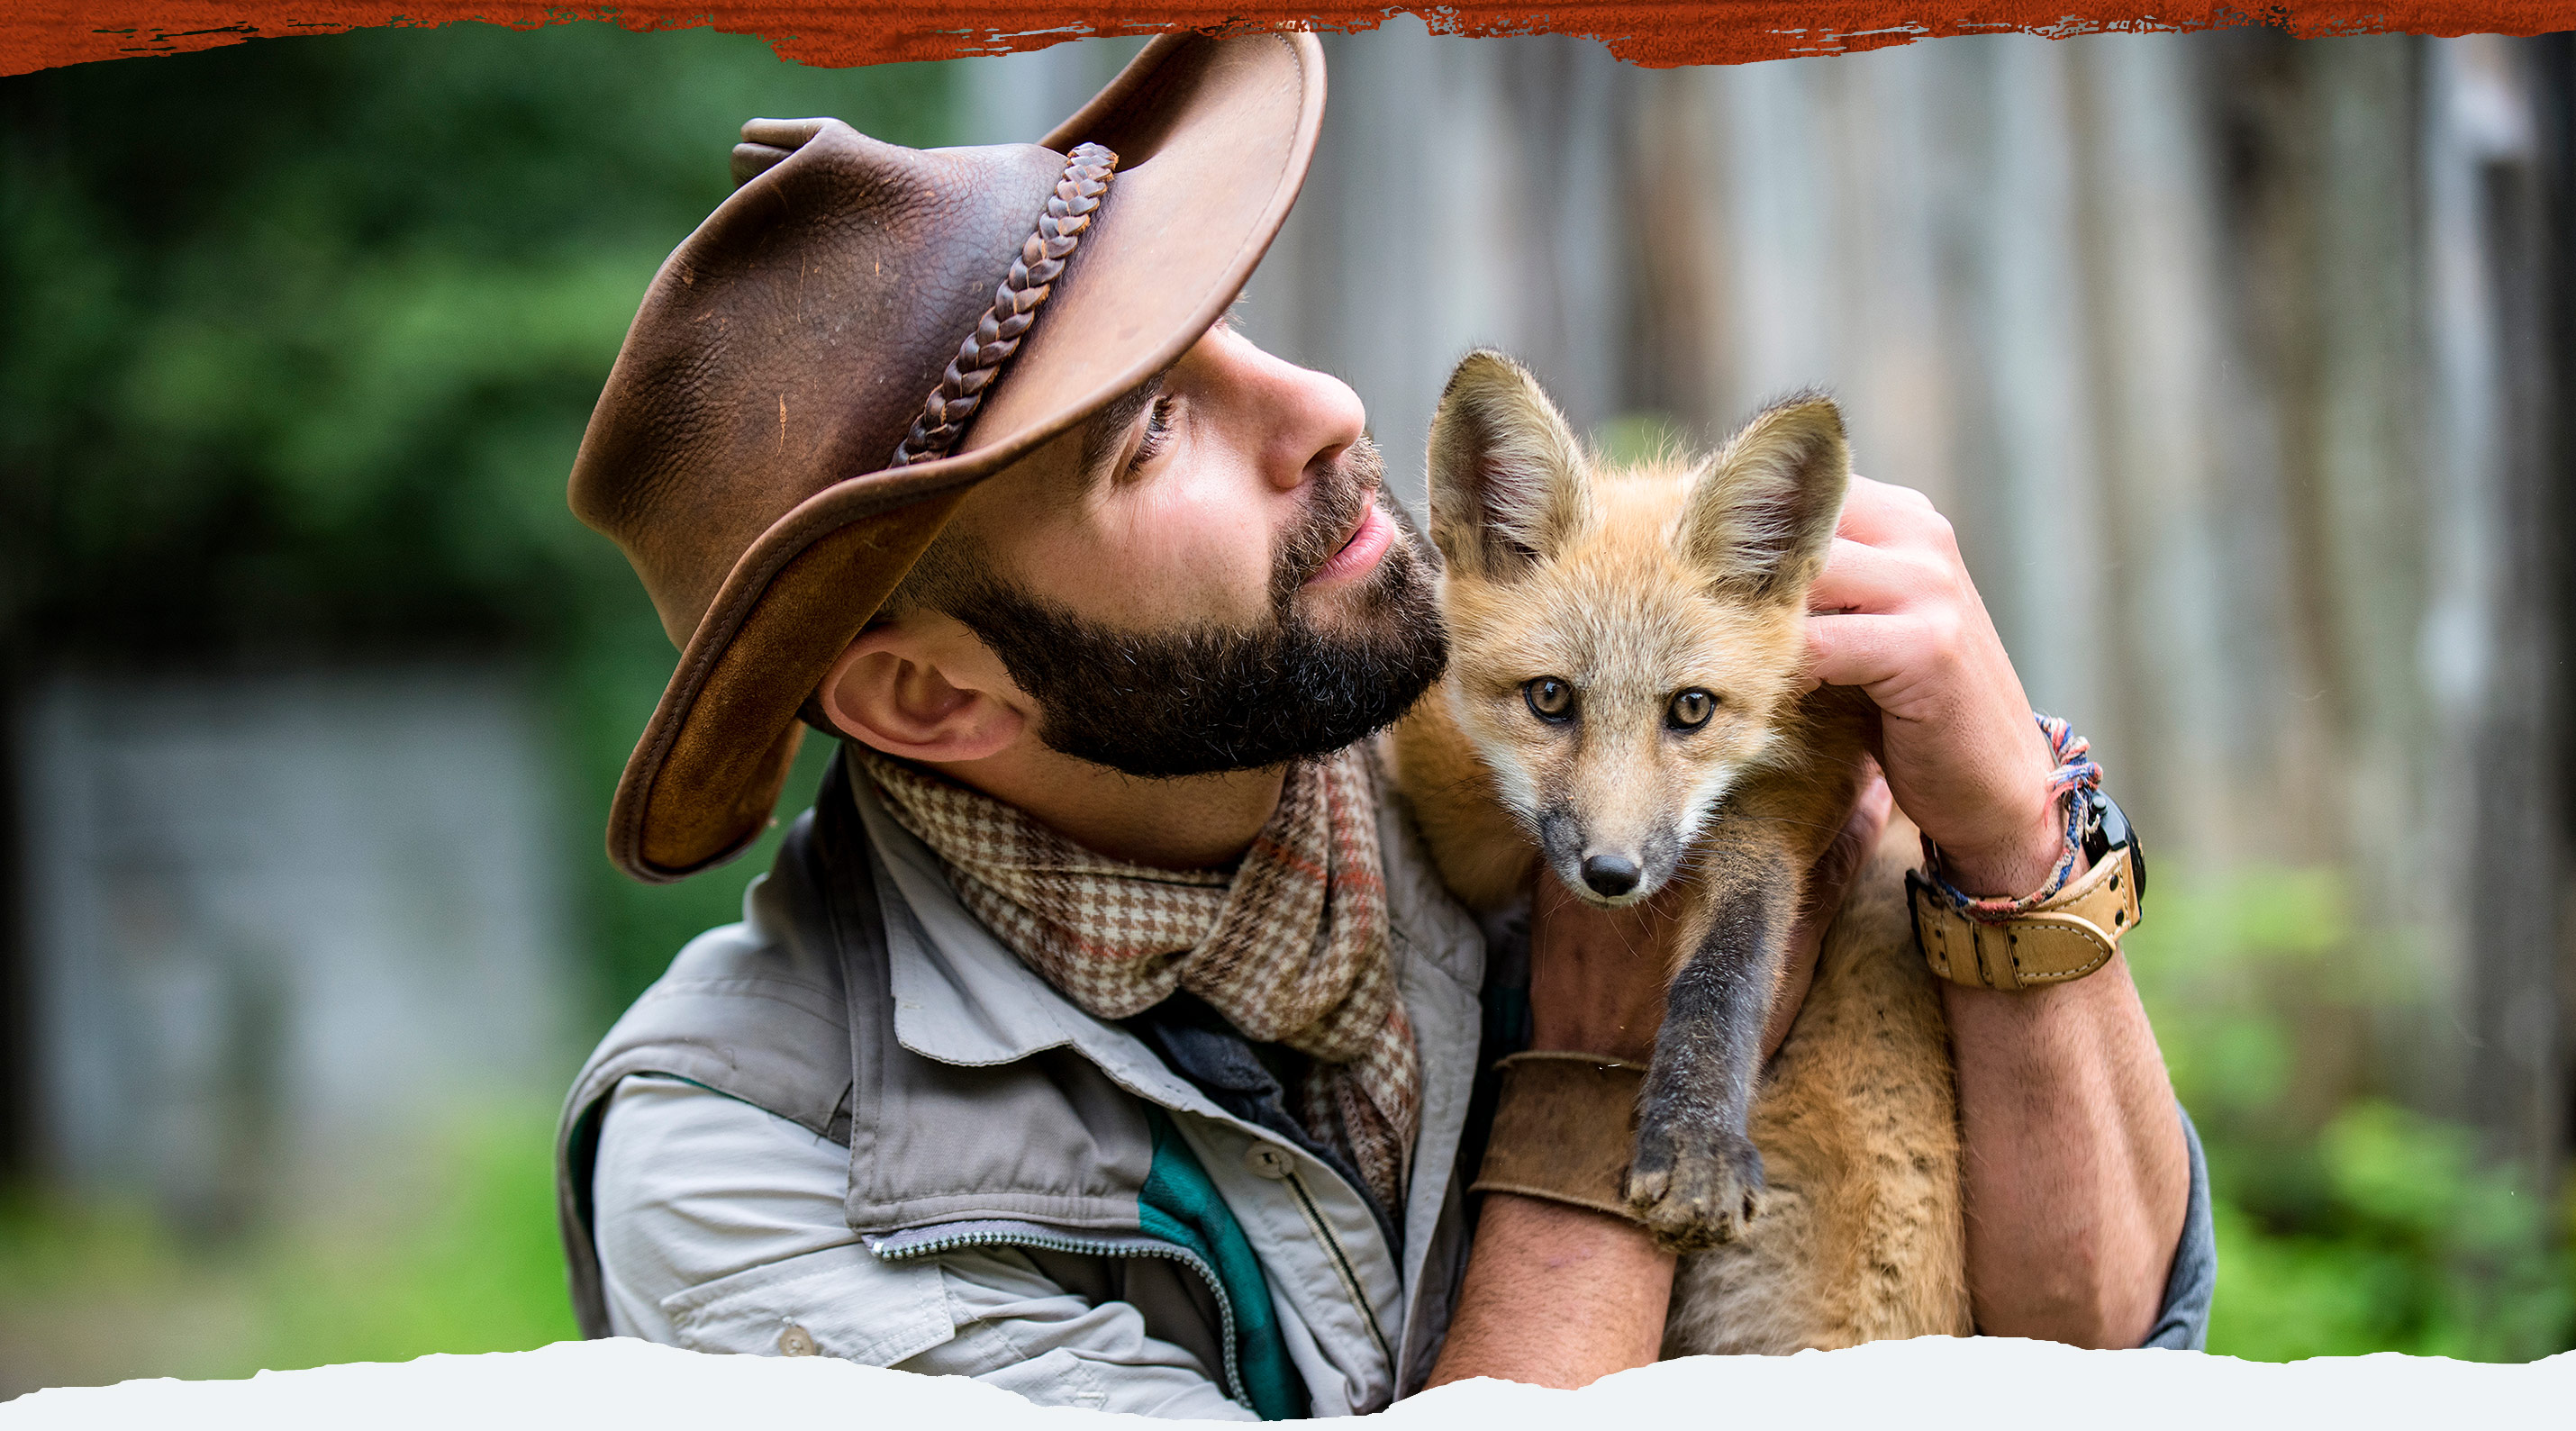 Henschel Hats - Coyote Peterson Sponsor